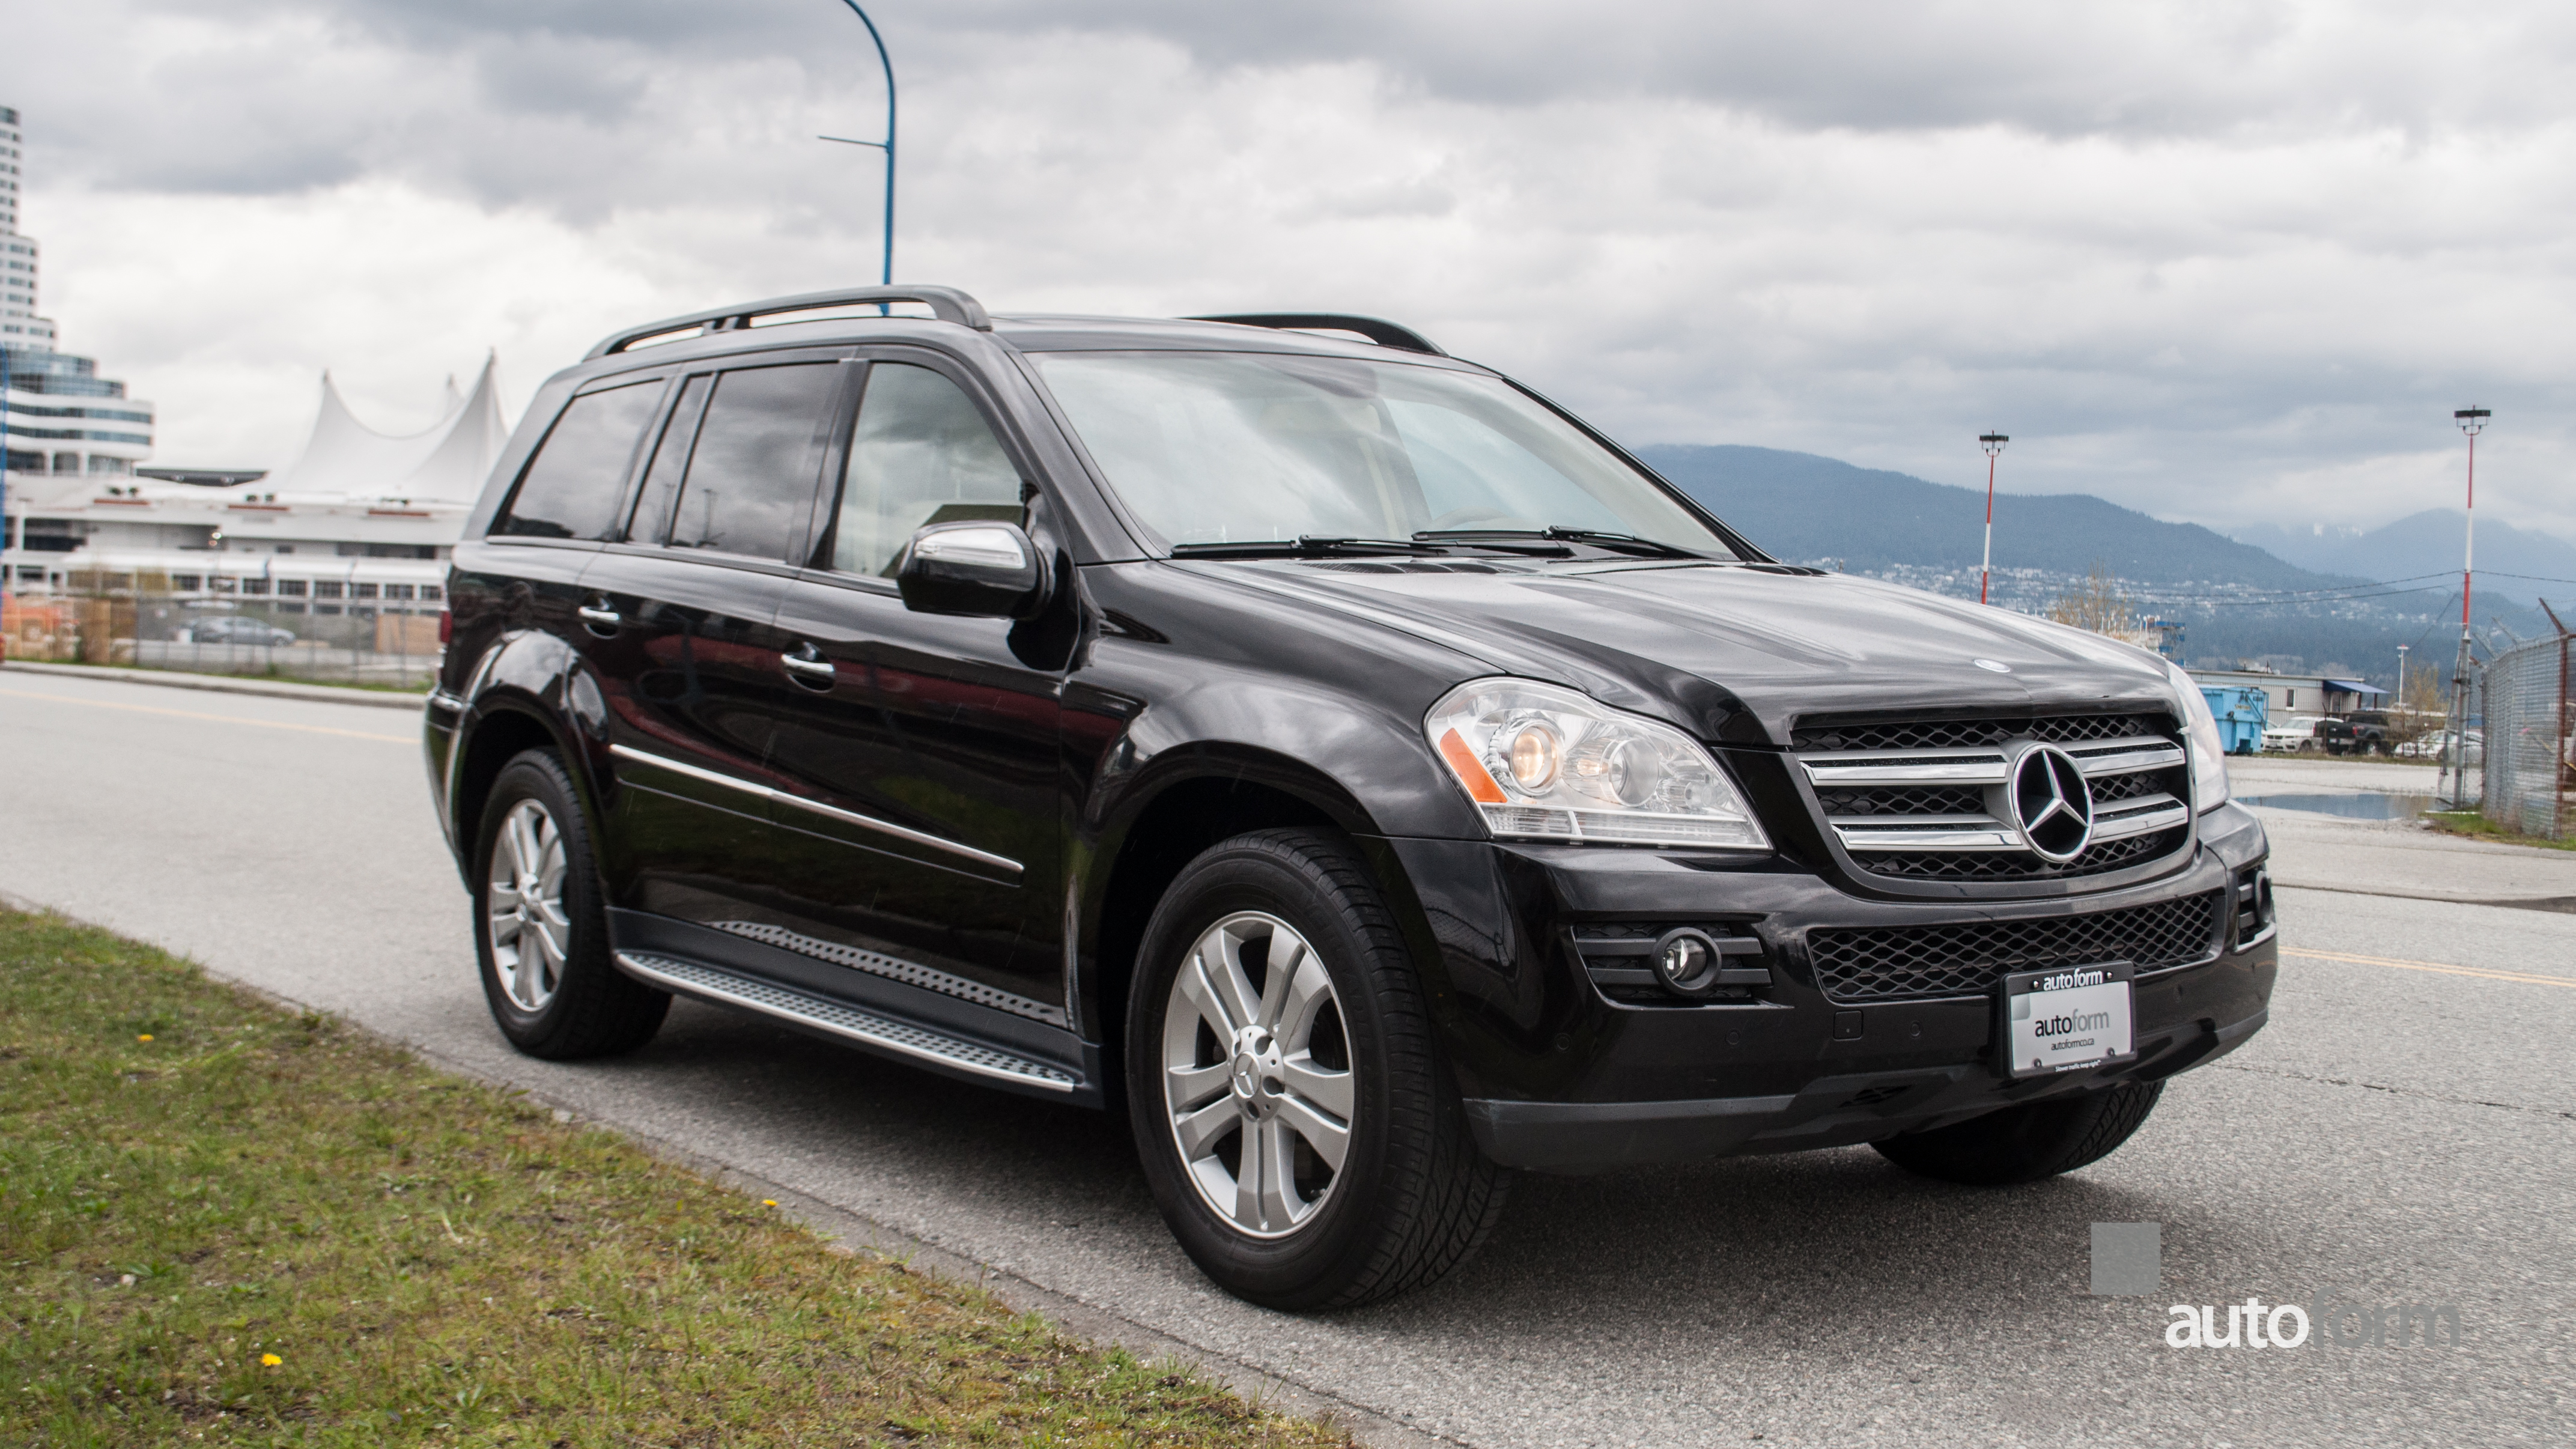 2009 mercedes benz gl450 autoform for Gl450 mercedes benz